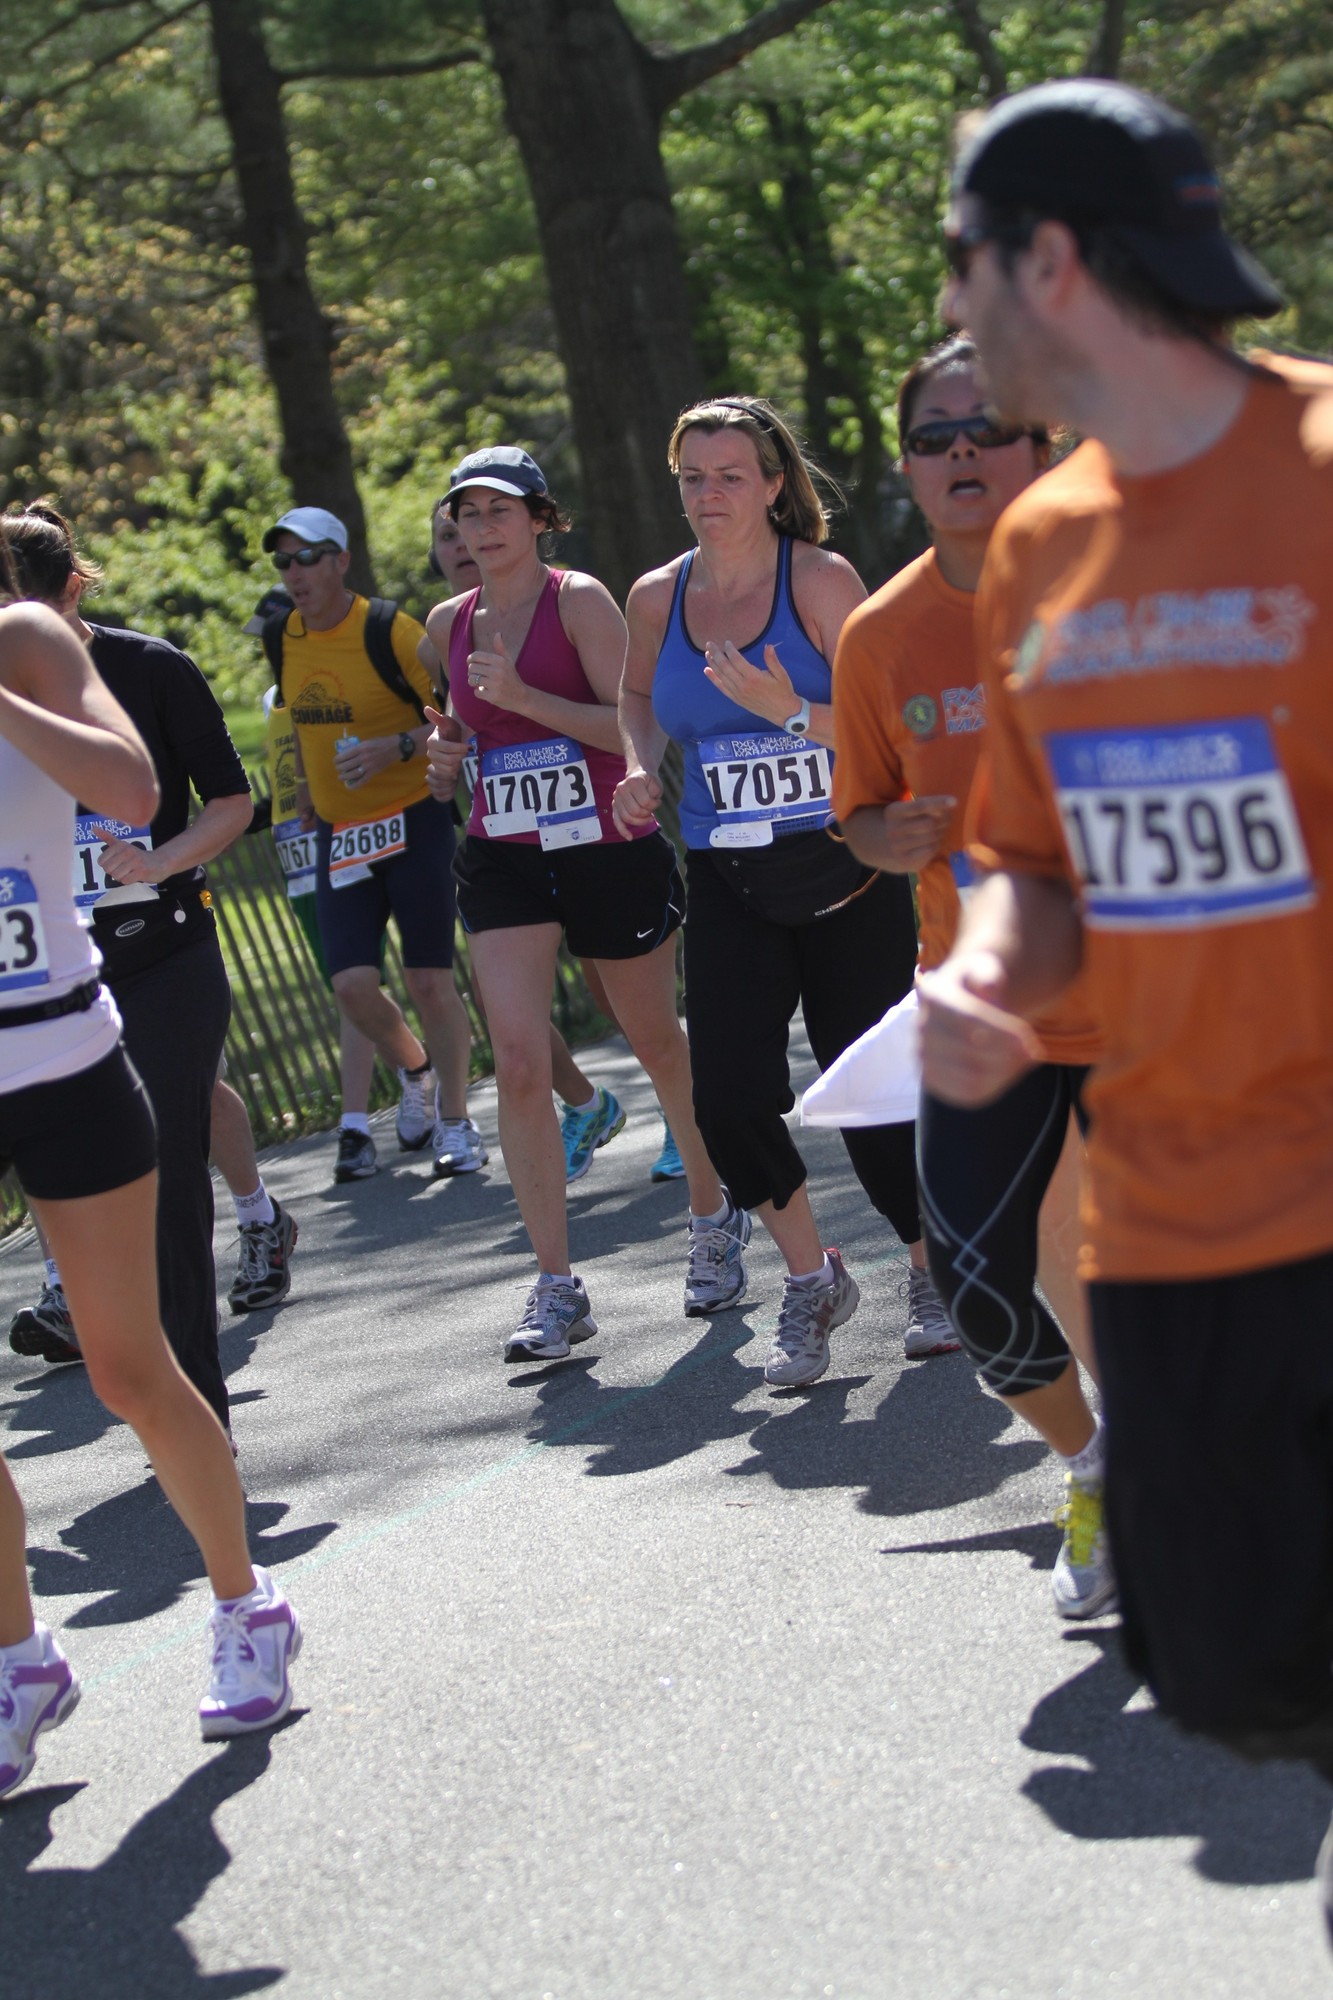 After a terror attack at the Boston Marathon on Monday, Nassau County Executive Ed Mangano said county officials are reviewing security plans for the annual RXR Long Island Marathon, which is to take place in central Nassau on May 5. Above, runners at the 2012 Long Island Marathon.